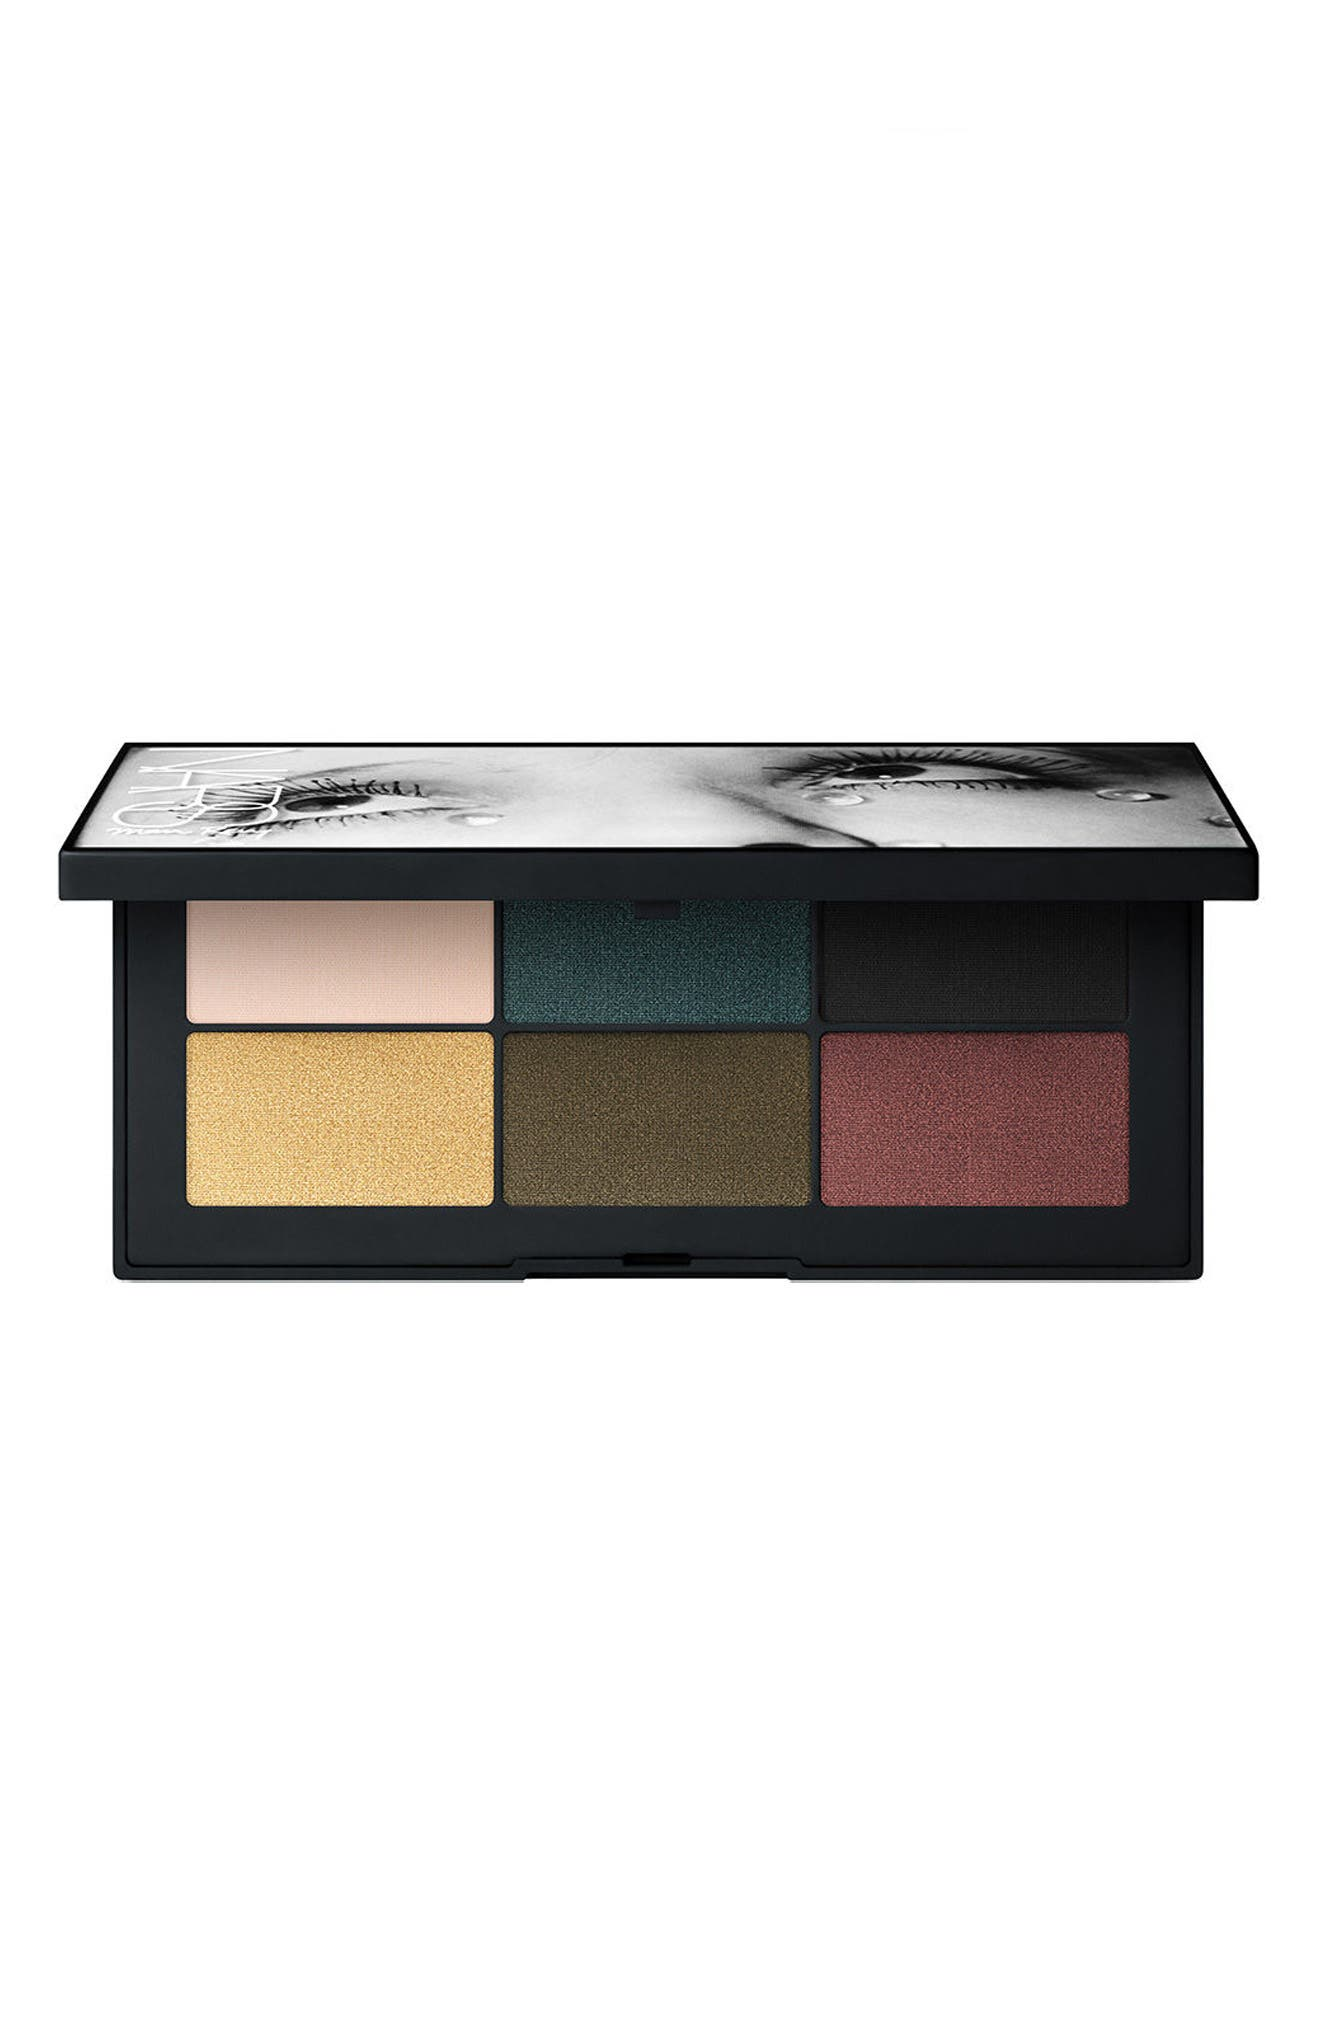 Man Ray Glass Tears Eyeshadow Palette,                             Alternate thumbnail 3, color,                             No Color